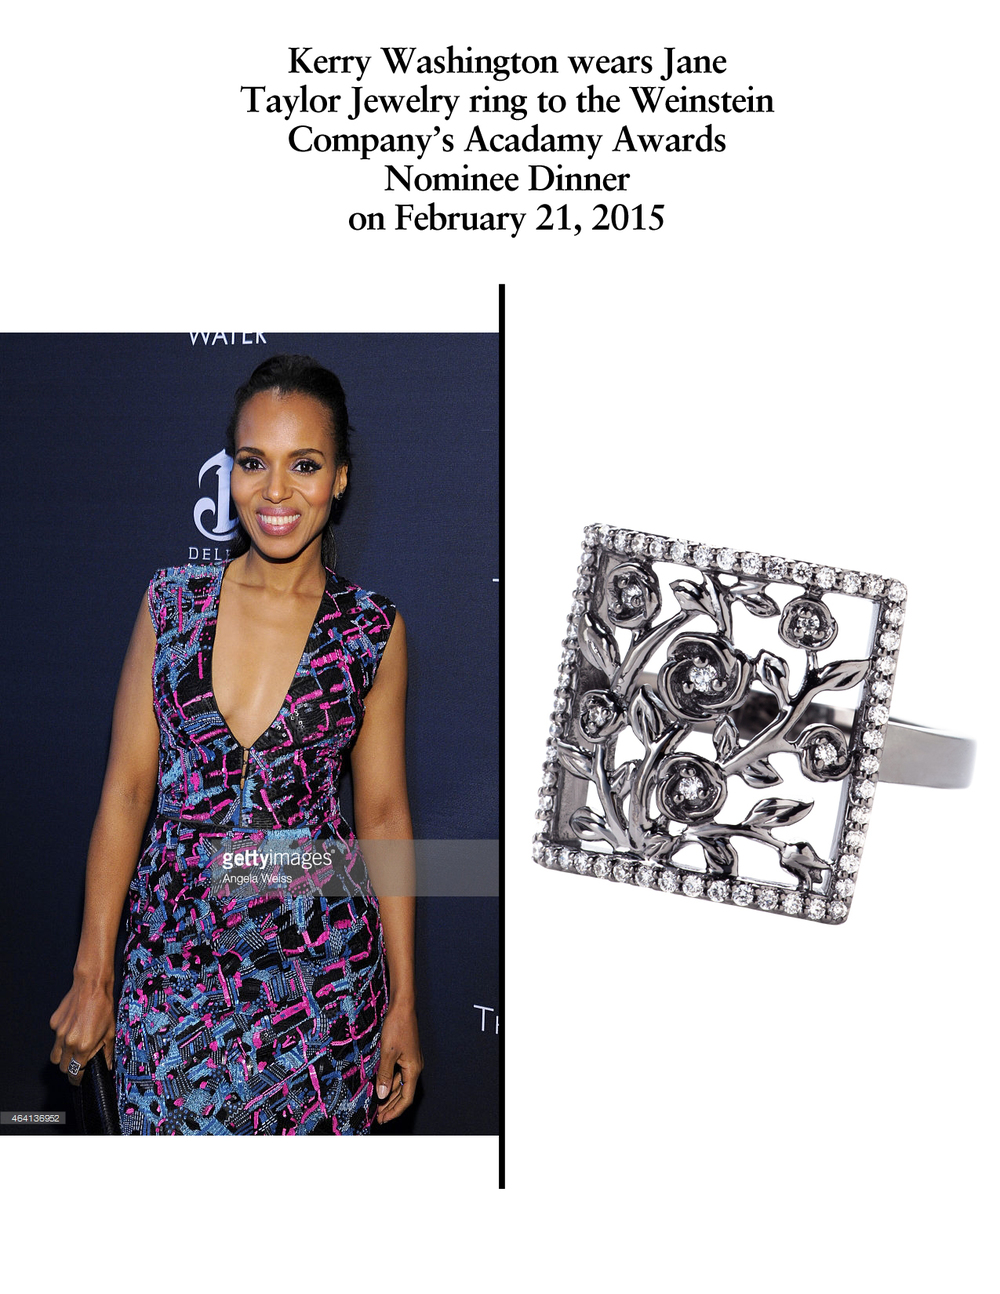 2015-2.21-Kerry Washington wearing Jane Taylor Jewelry.jpg